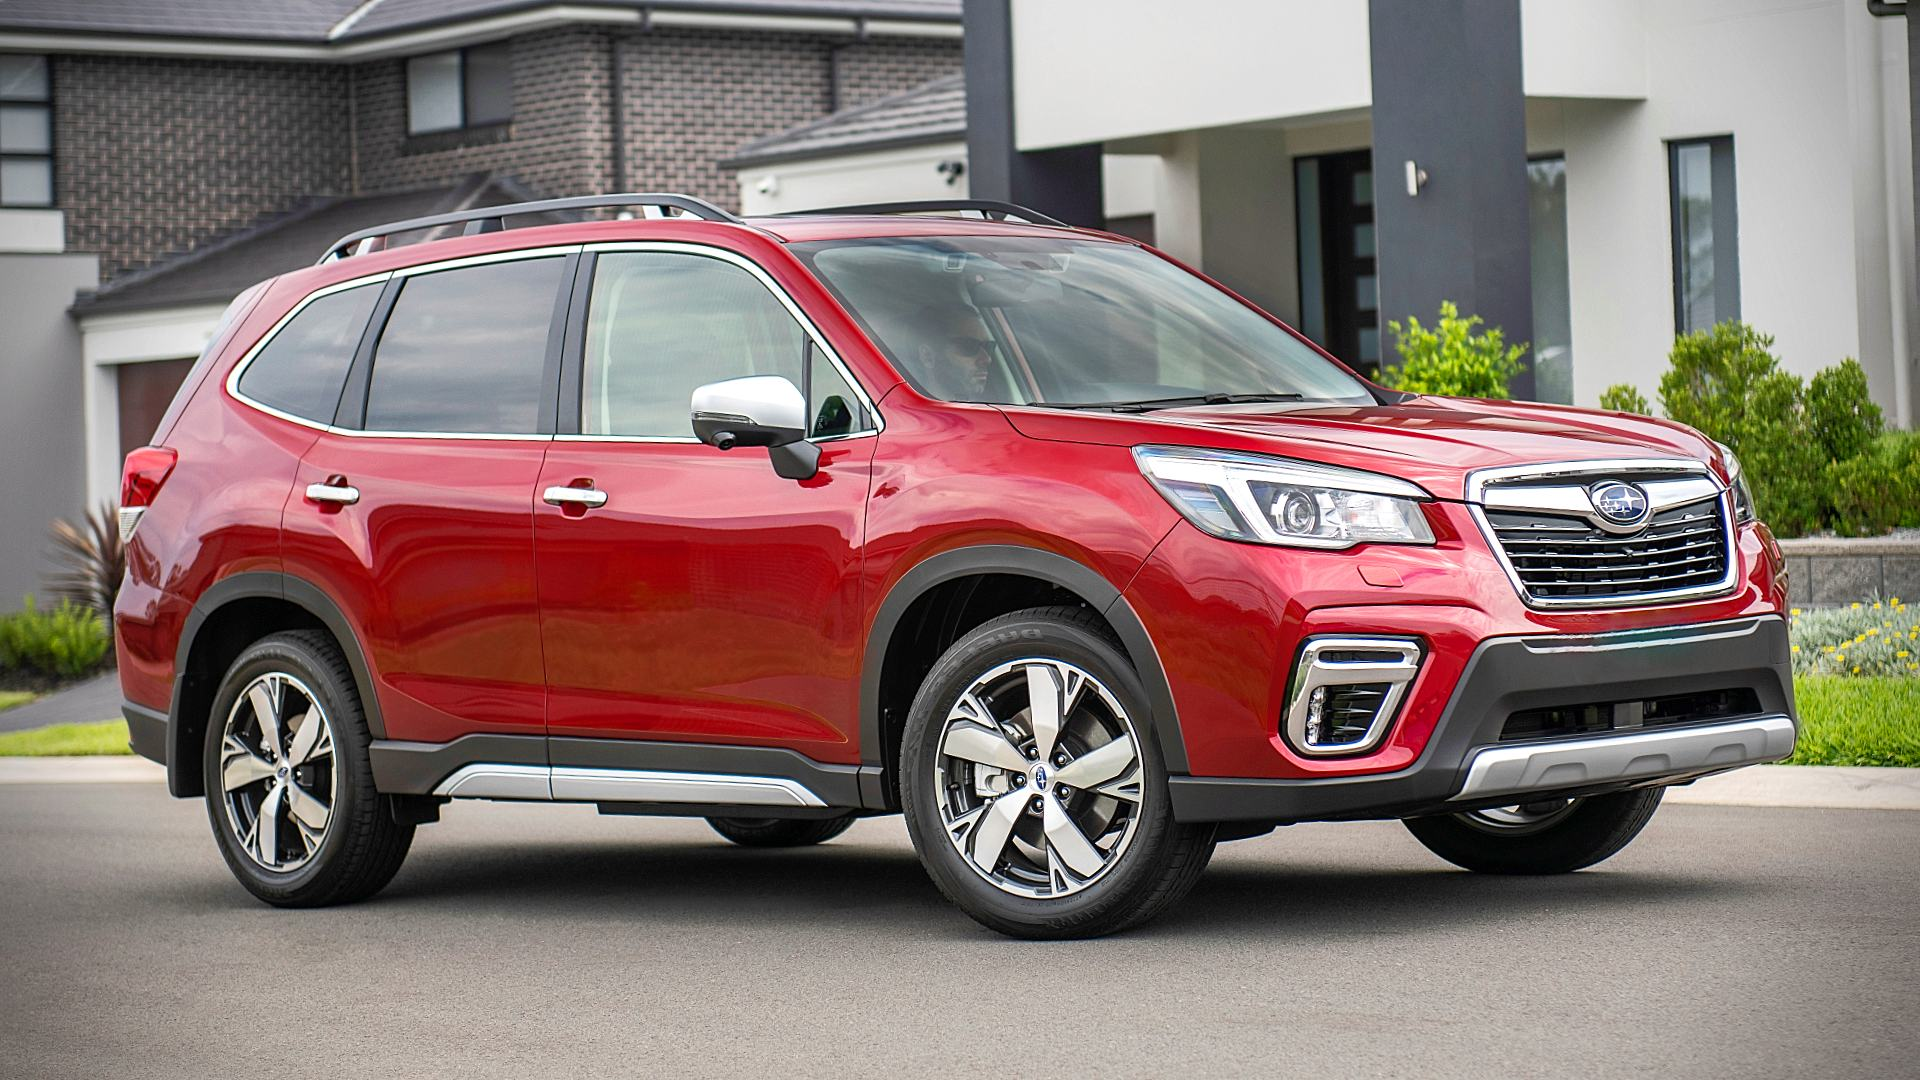 2020 Subaru Forester Hybrid E-Boxer Red Pictures Images